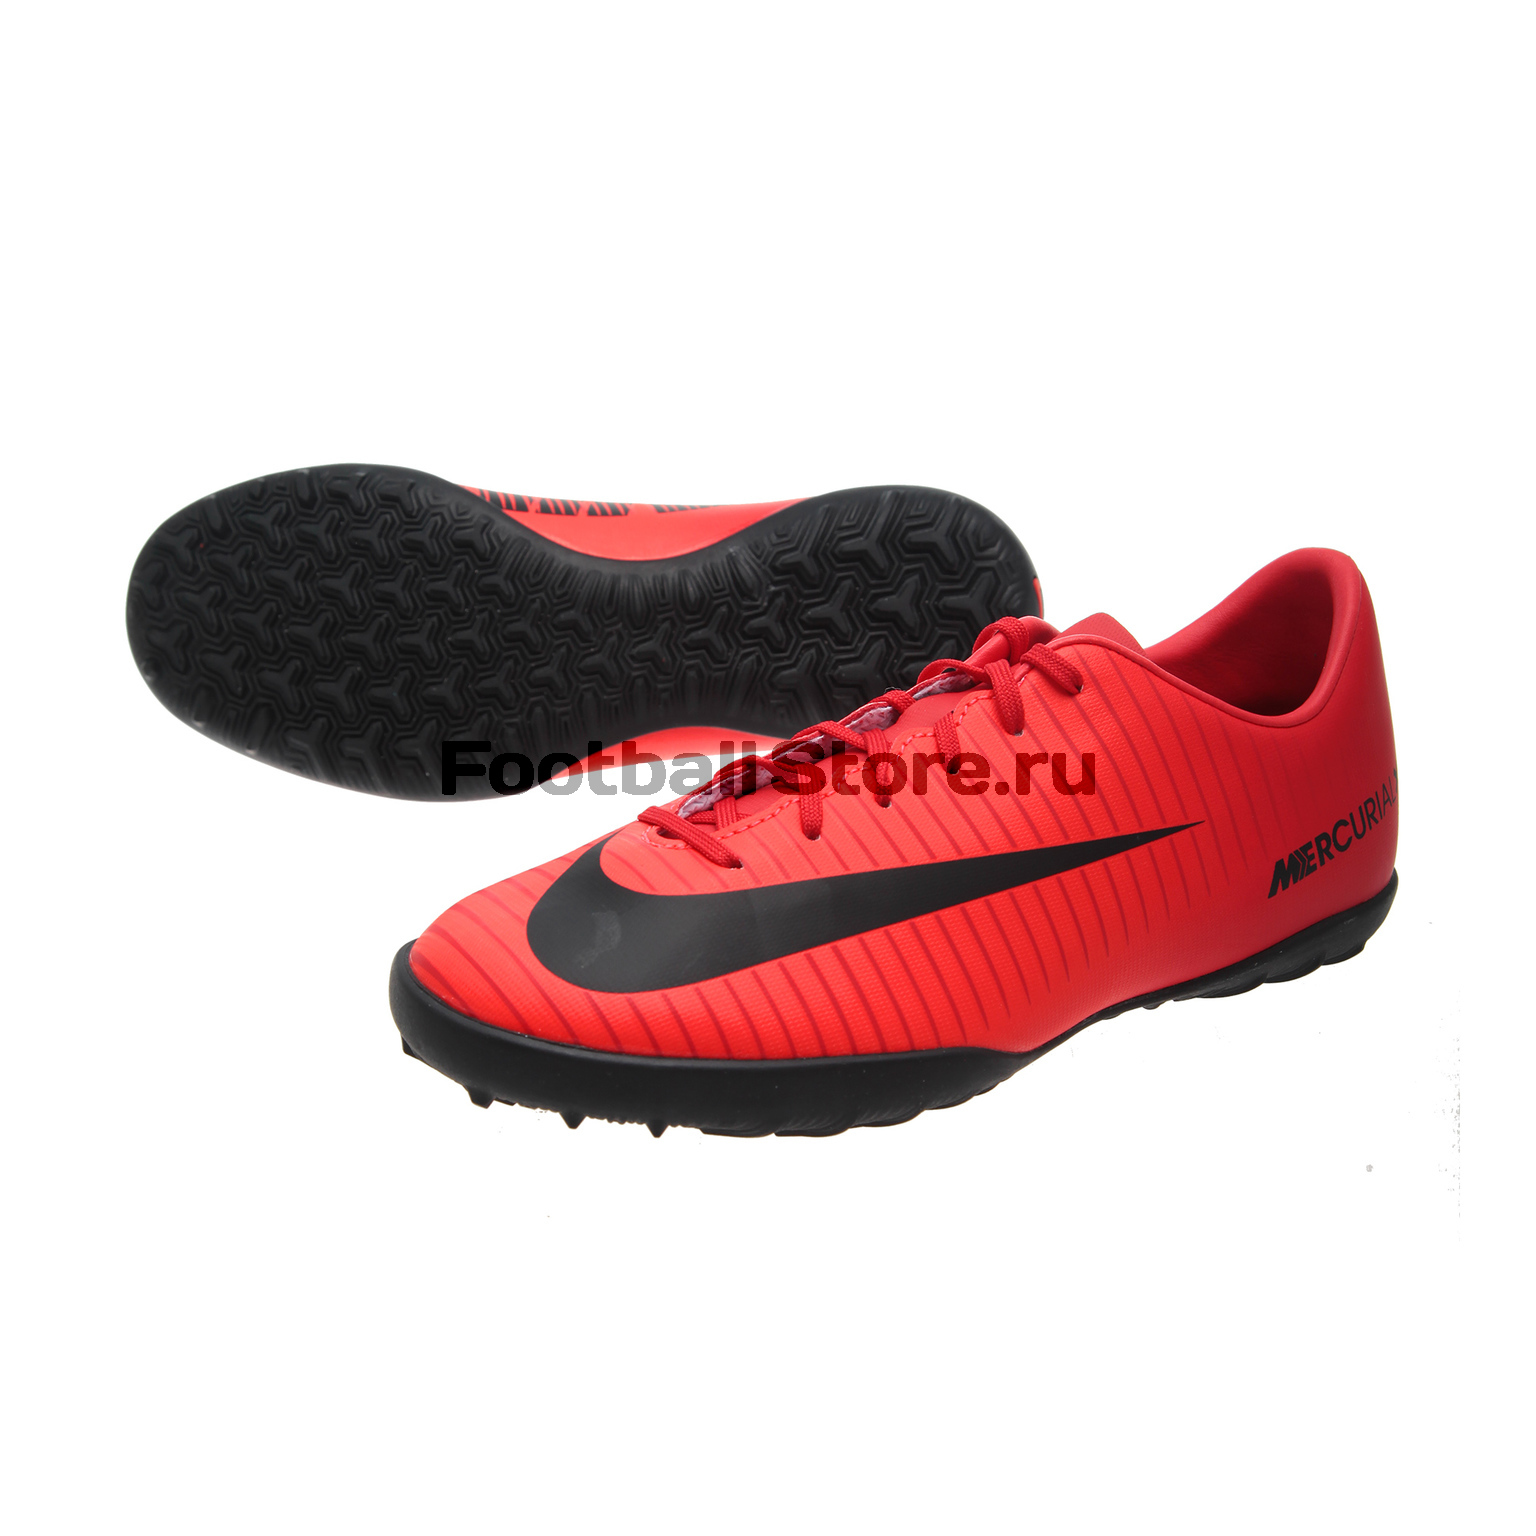 Бутсы Nike Шиповки Nike JR Mercurial X Vapor TF 831949-616 клюшка для гольфа nike vapor pro 2015